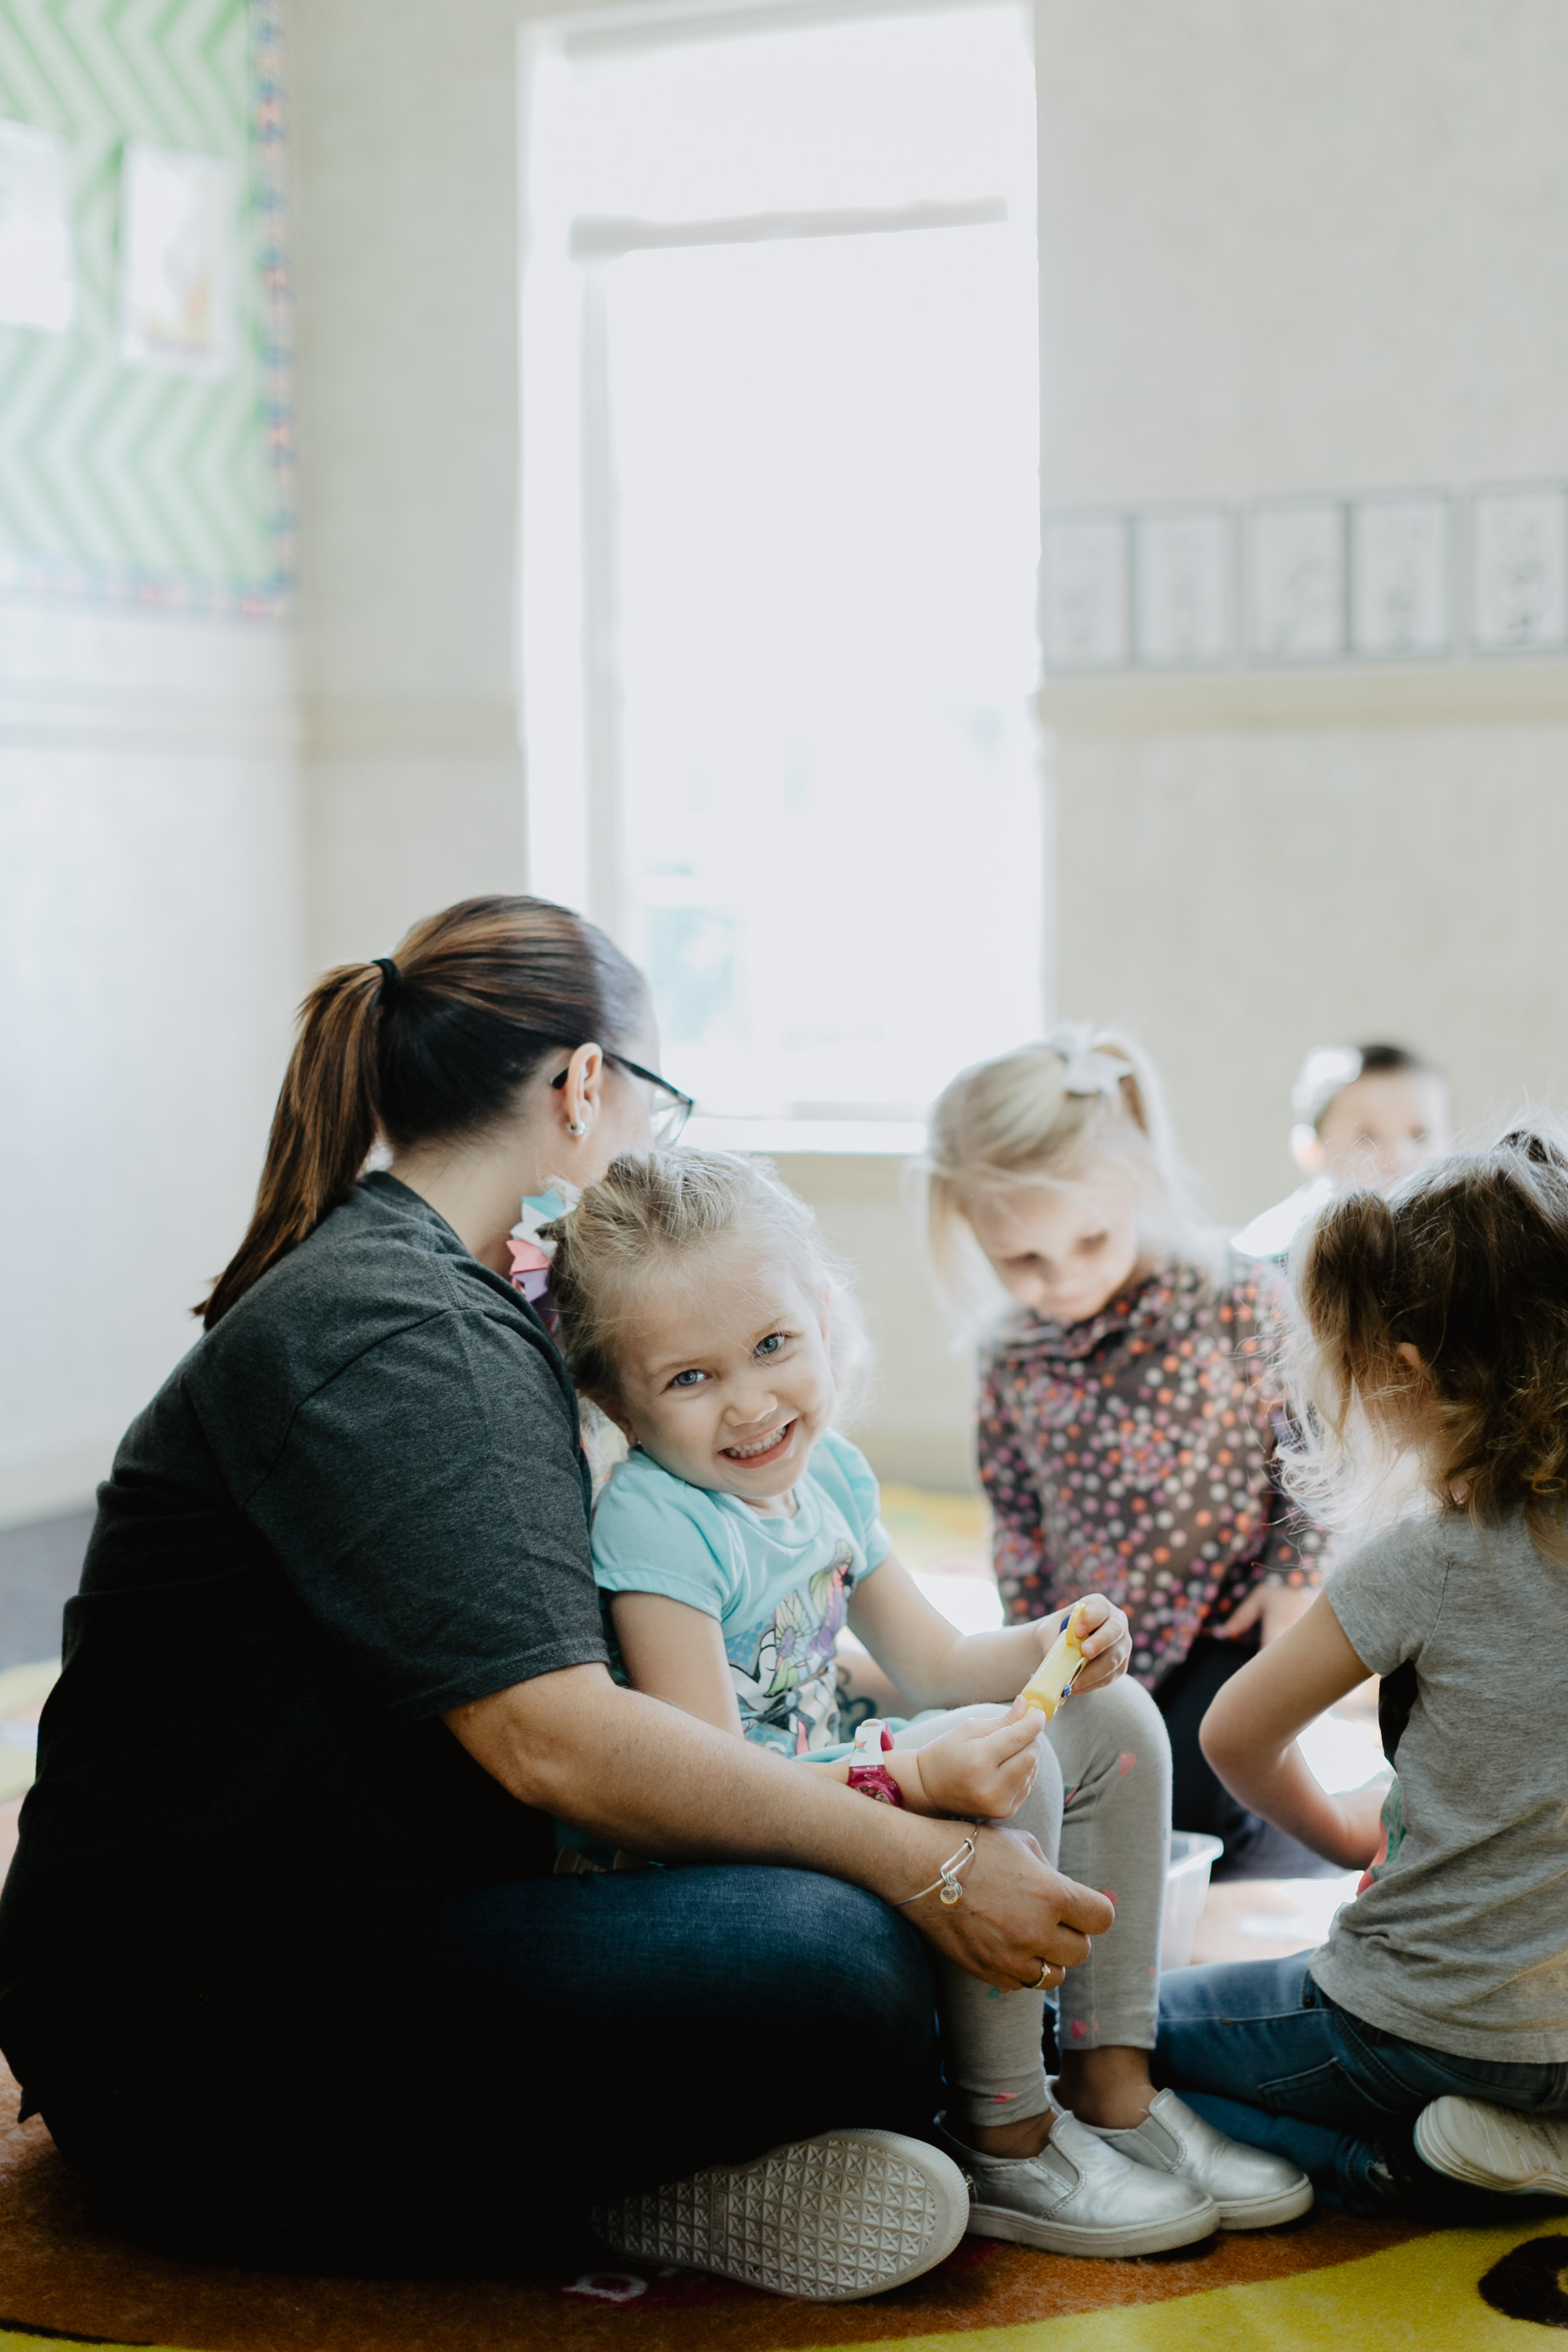 AND OUR FAMILY MINISTRIES   If you've got kids, we've got a place for them! Our facility is an Early Learning Center through the week creating the ultimate safe, age-appropriate, interactive, and cultivating environment for your children. We have environments for  Birth-Pre-K ,  K-5th Grade , and  Middle School .